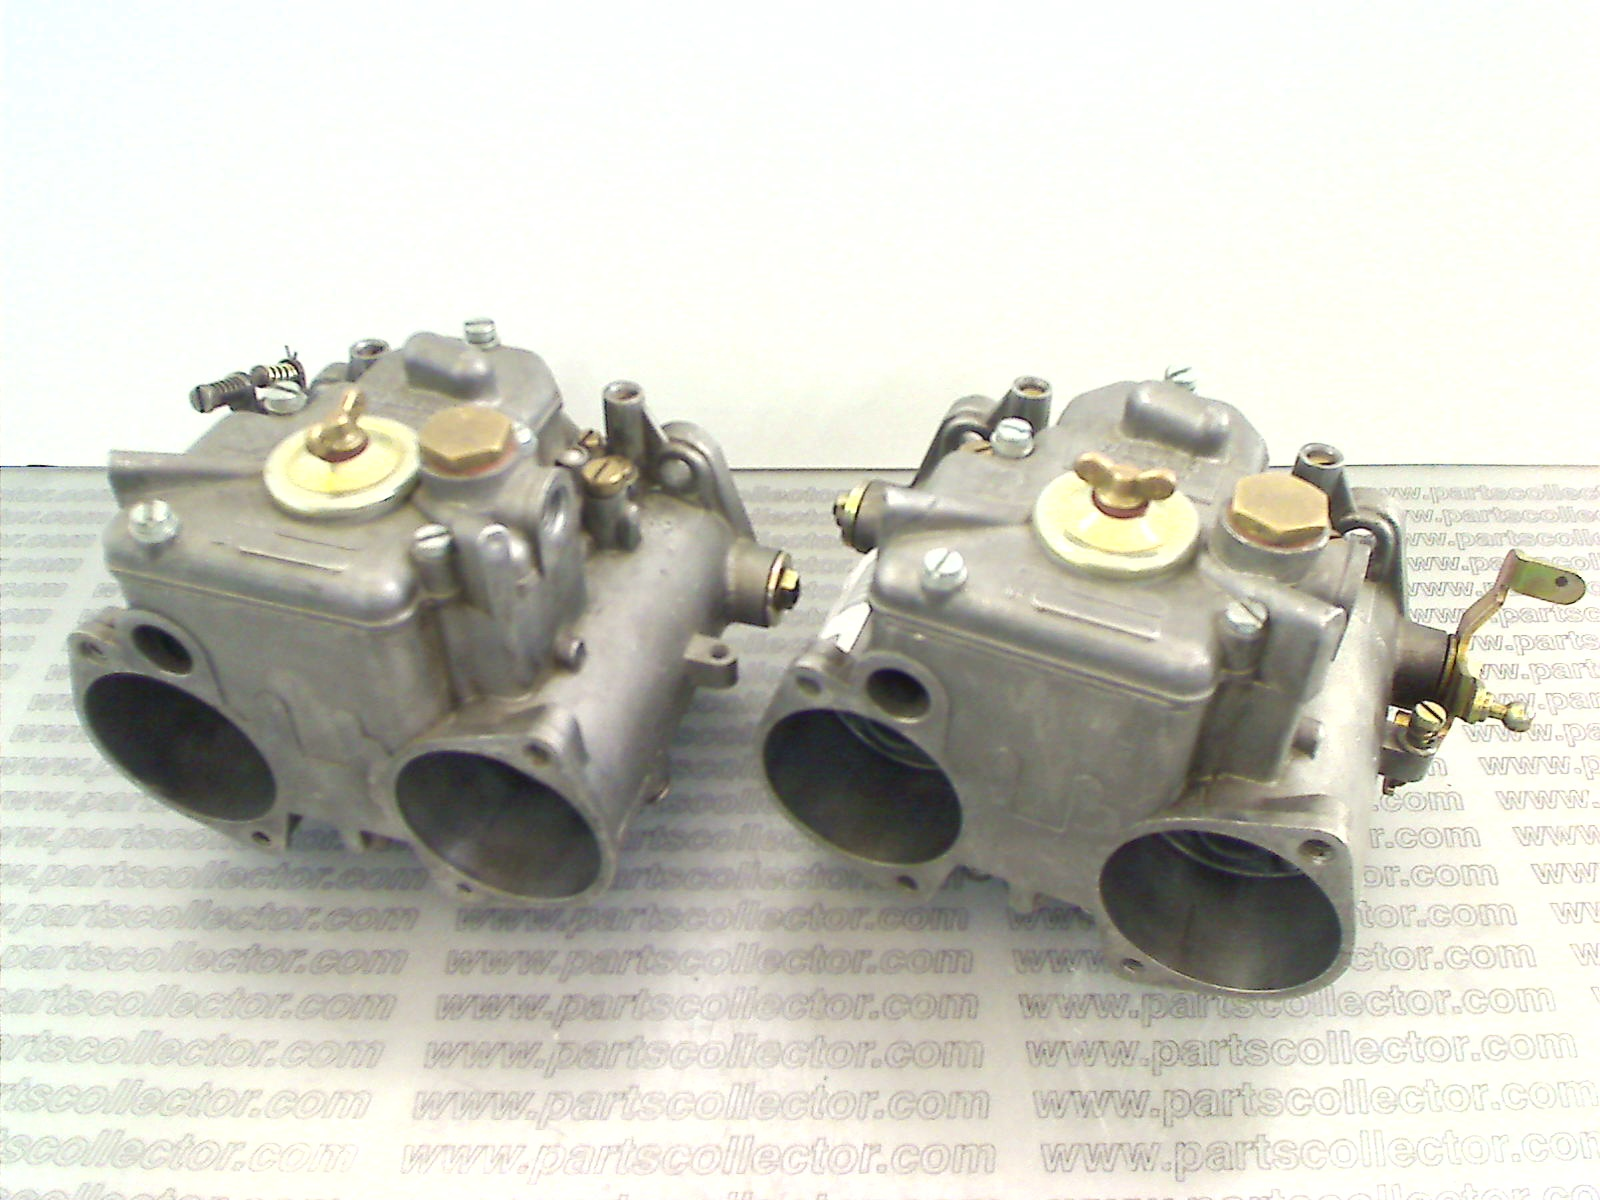 PAIR OF CARBURETORS